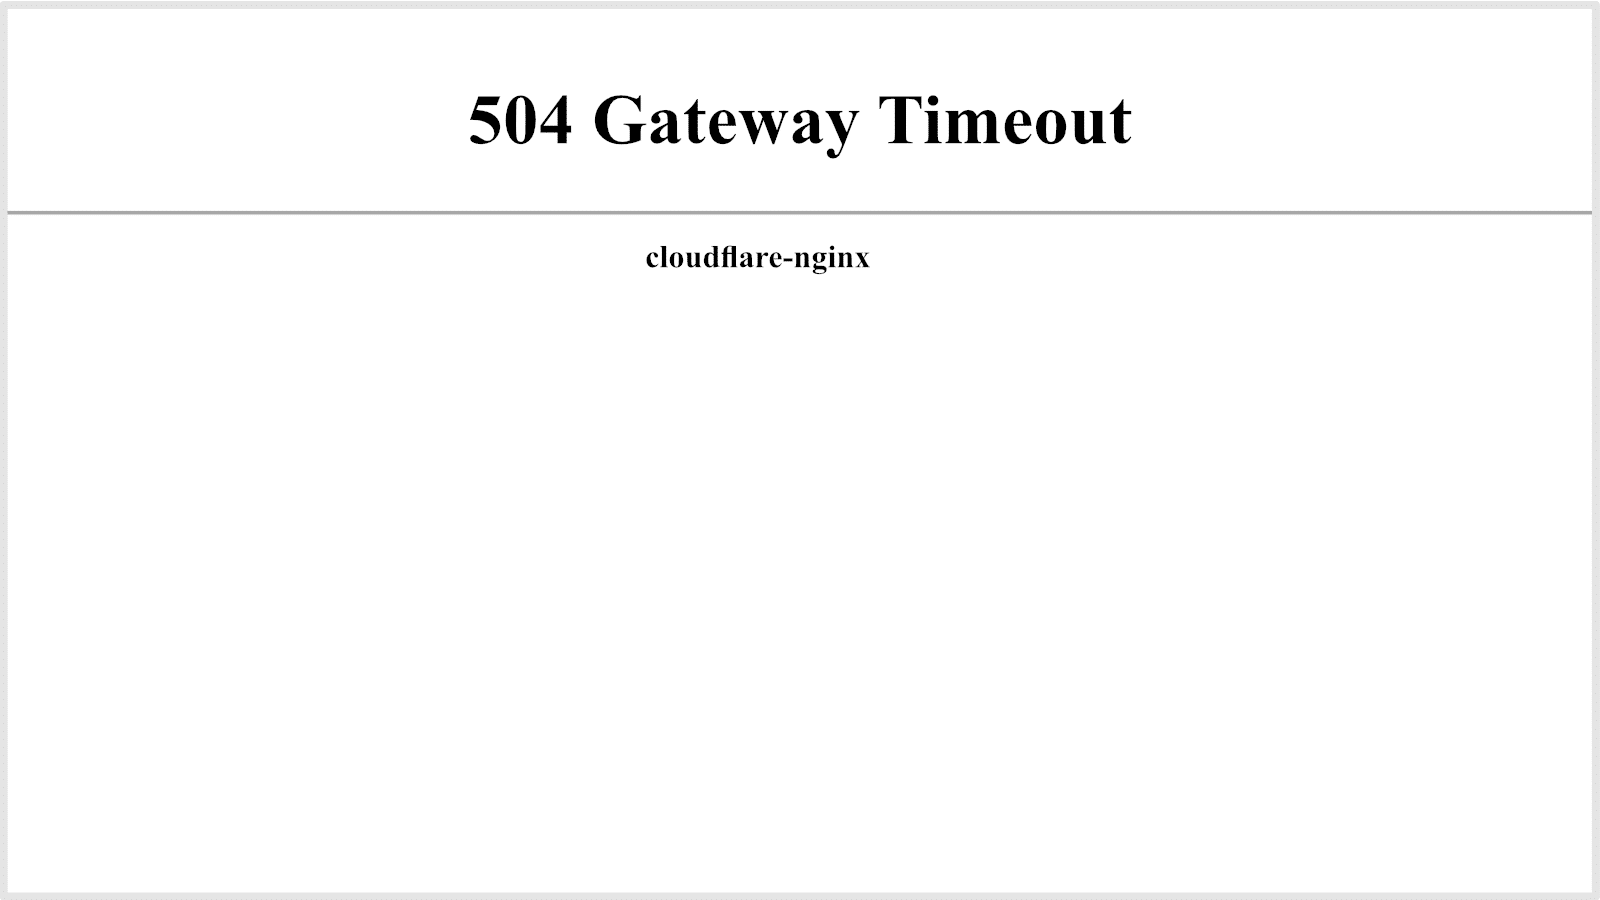 How to Fix a 504 Gateway Timeout Error on Your WordPress Site